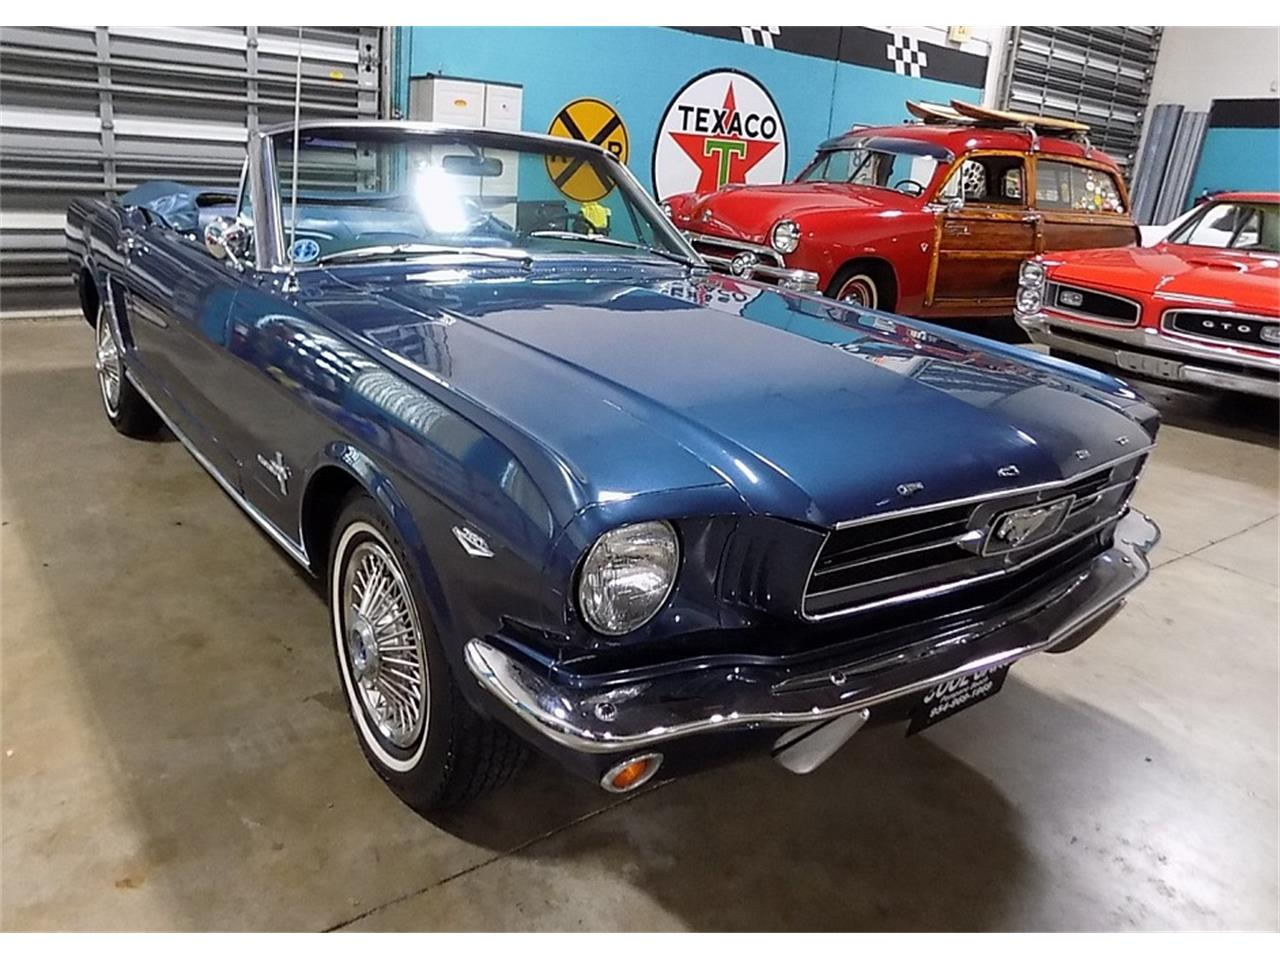 Ford Mustang 1965 v8 prix tout compris 1965